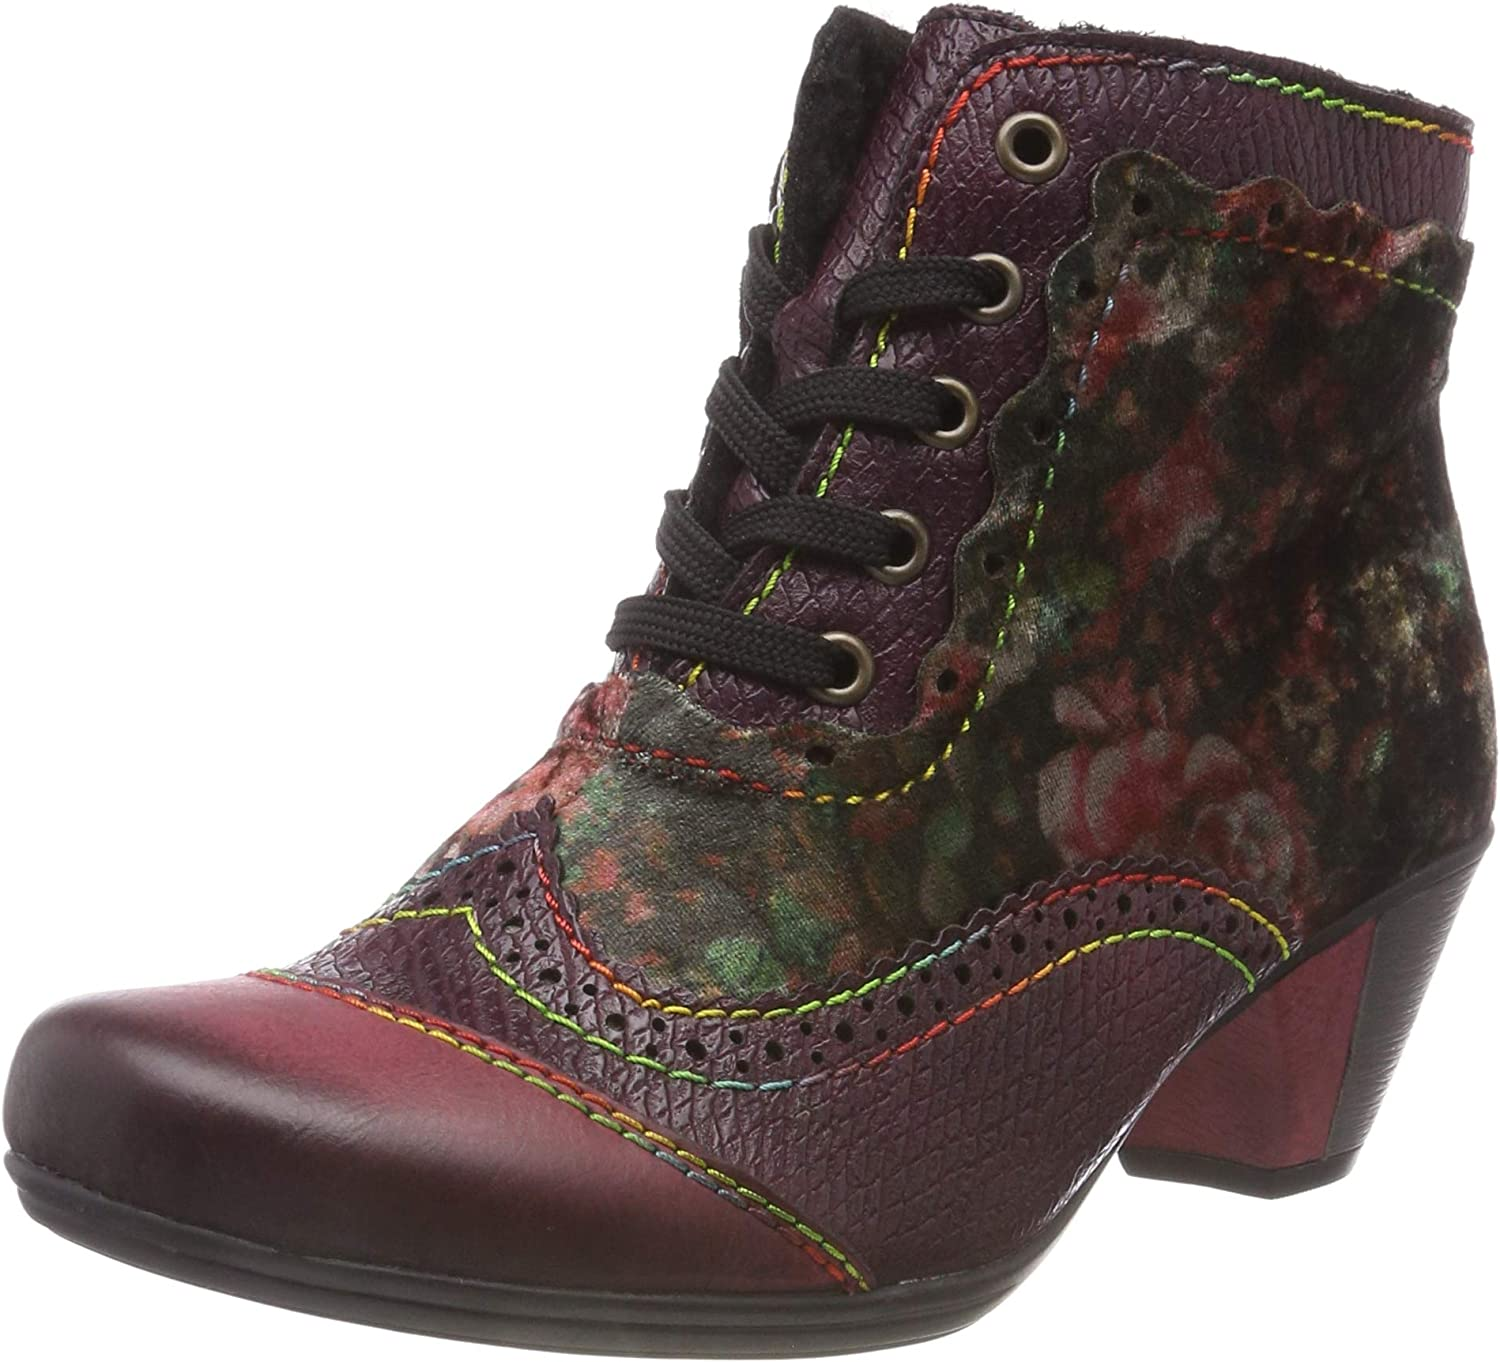 Rieker Women's Red Combination Multi Mid Heel Lace Up Ankle Boot